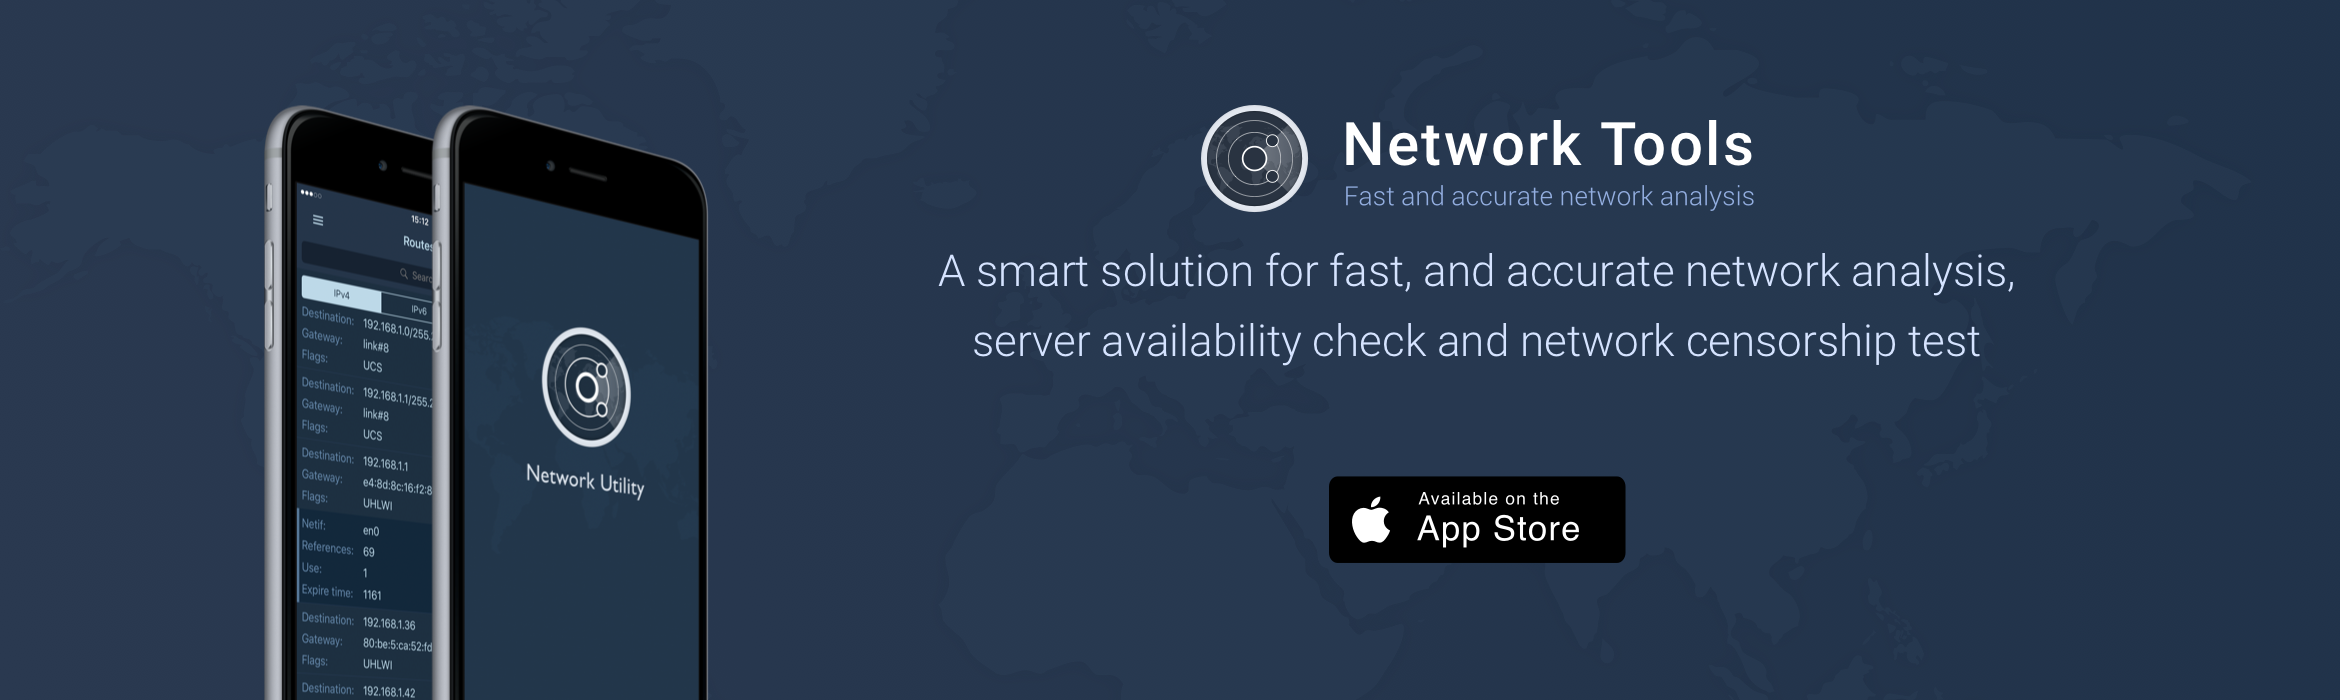 Analyze Your Network Faster and Easier with Network Tools 1.4